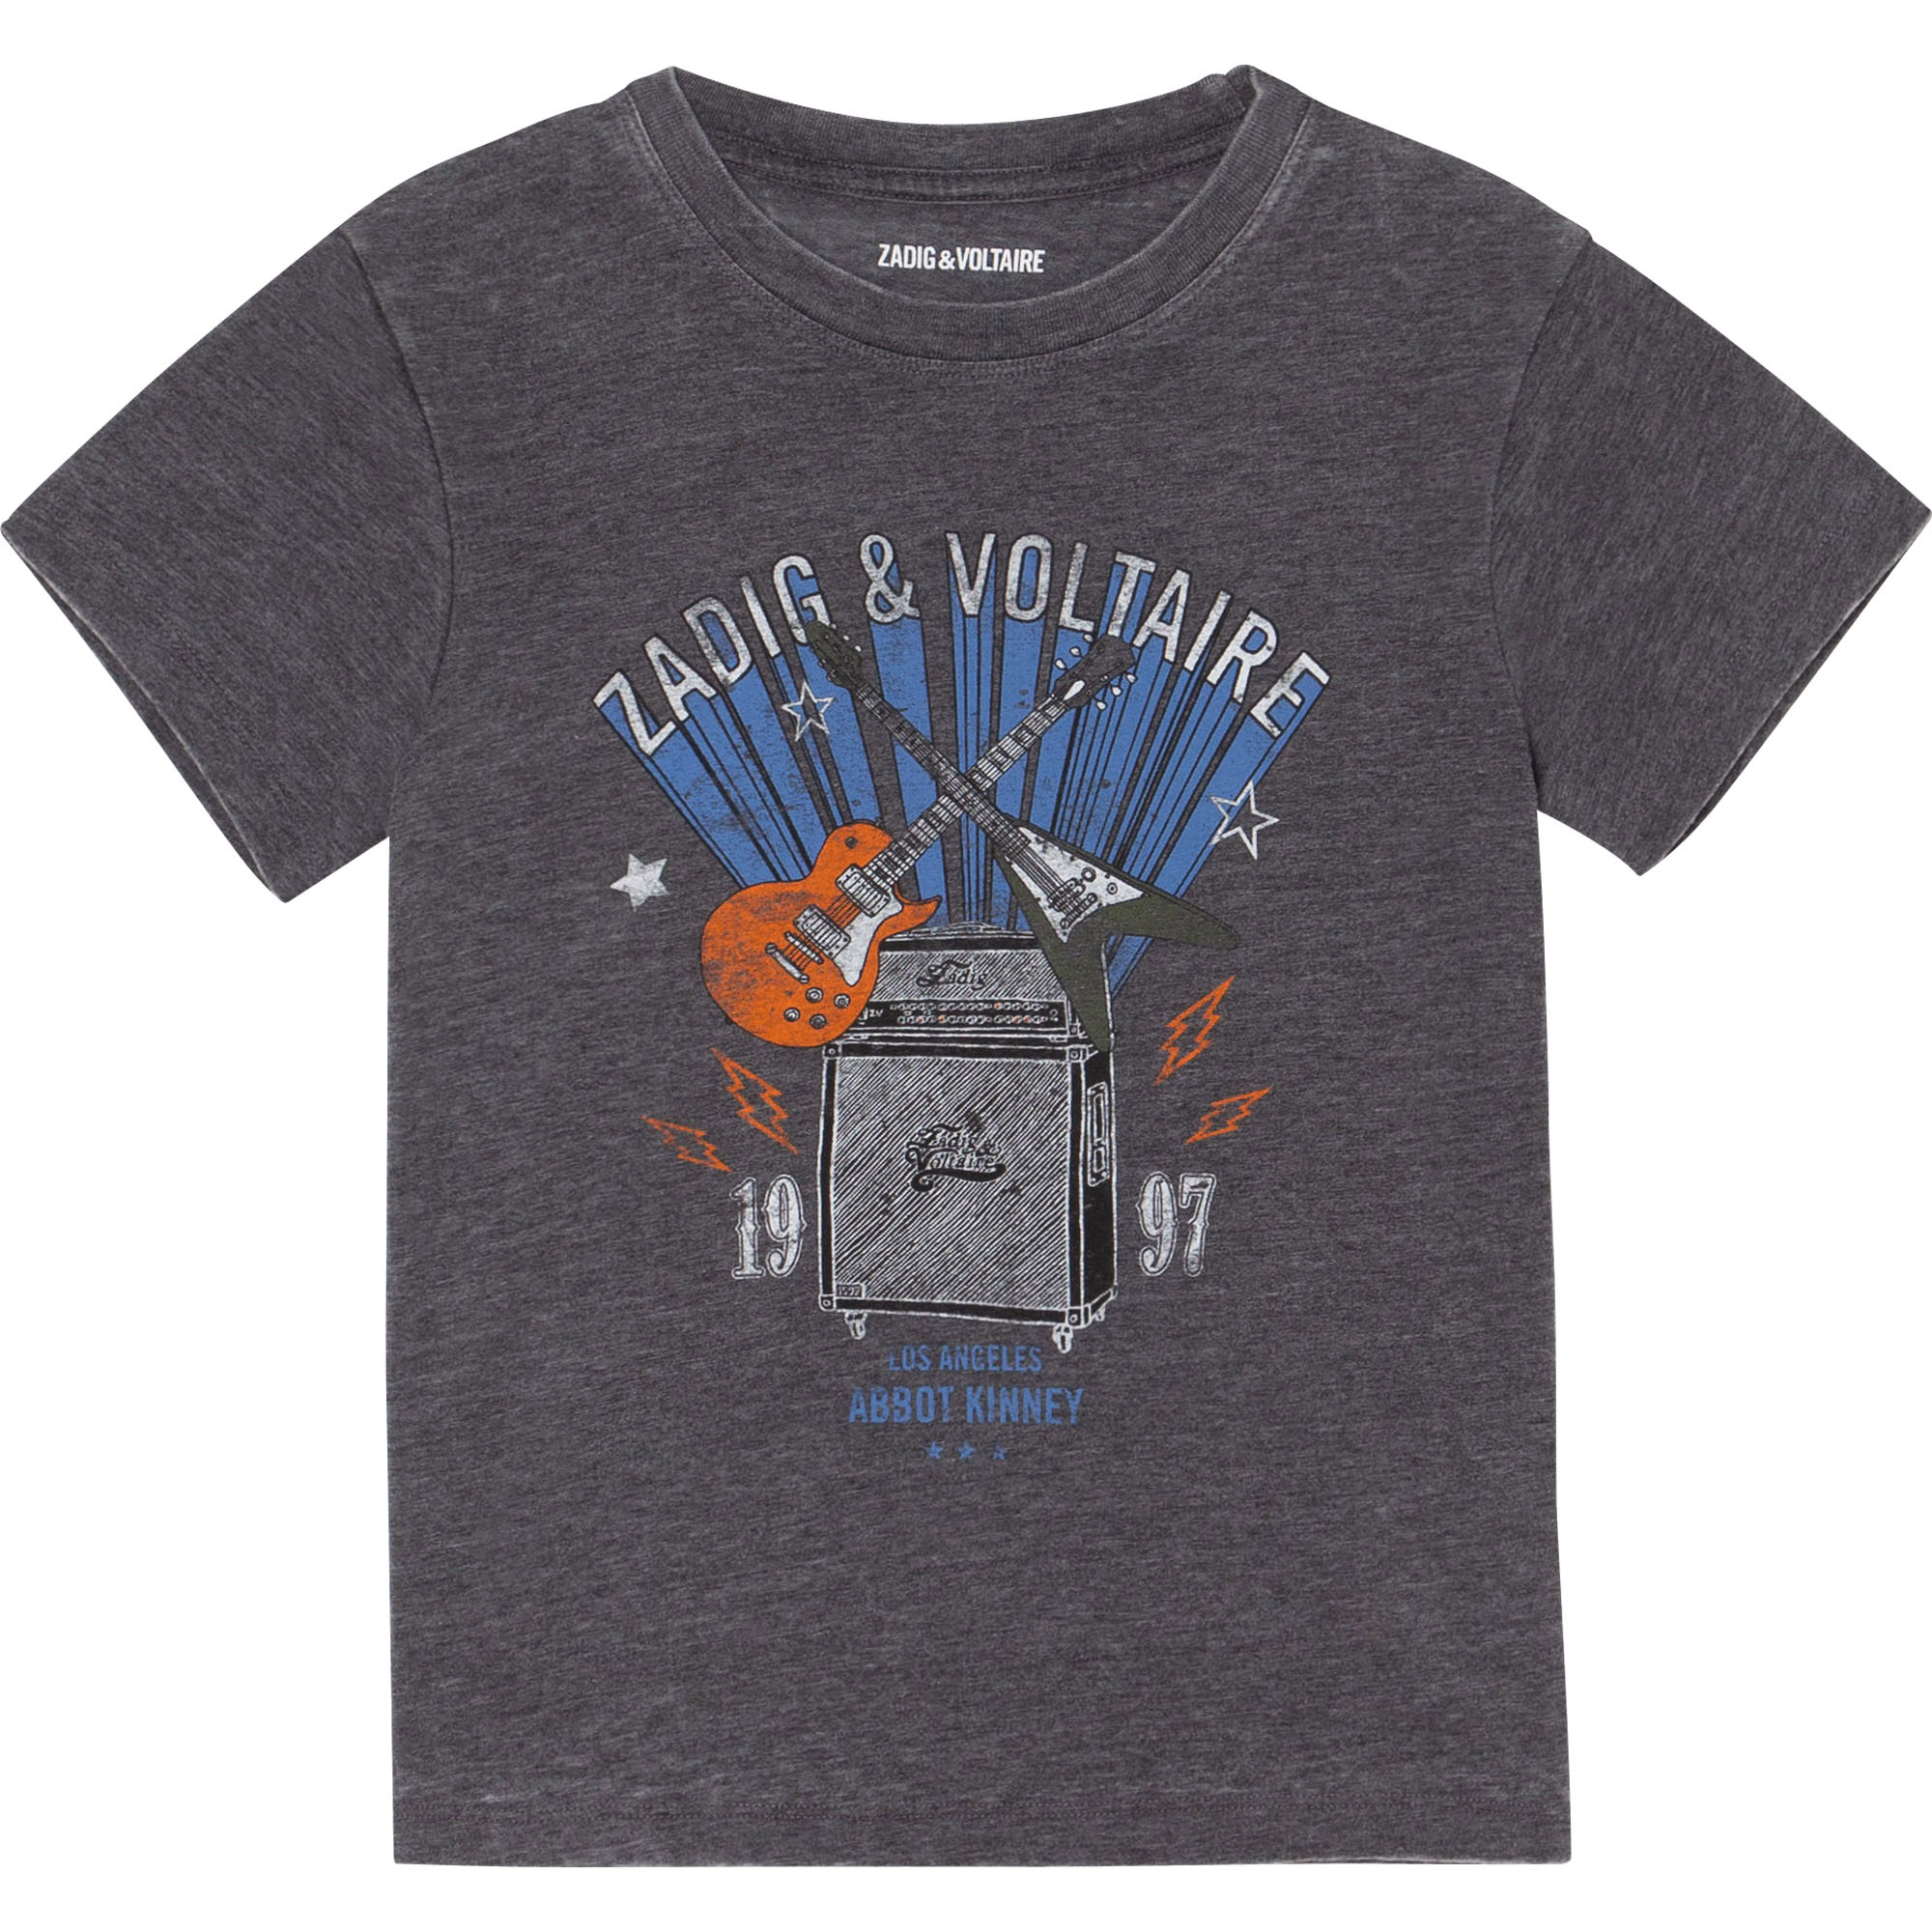 ZADIG&VOLTAIRE t-shirt jersey manches courtes-1